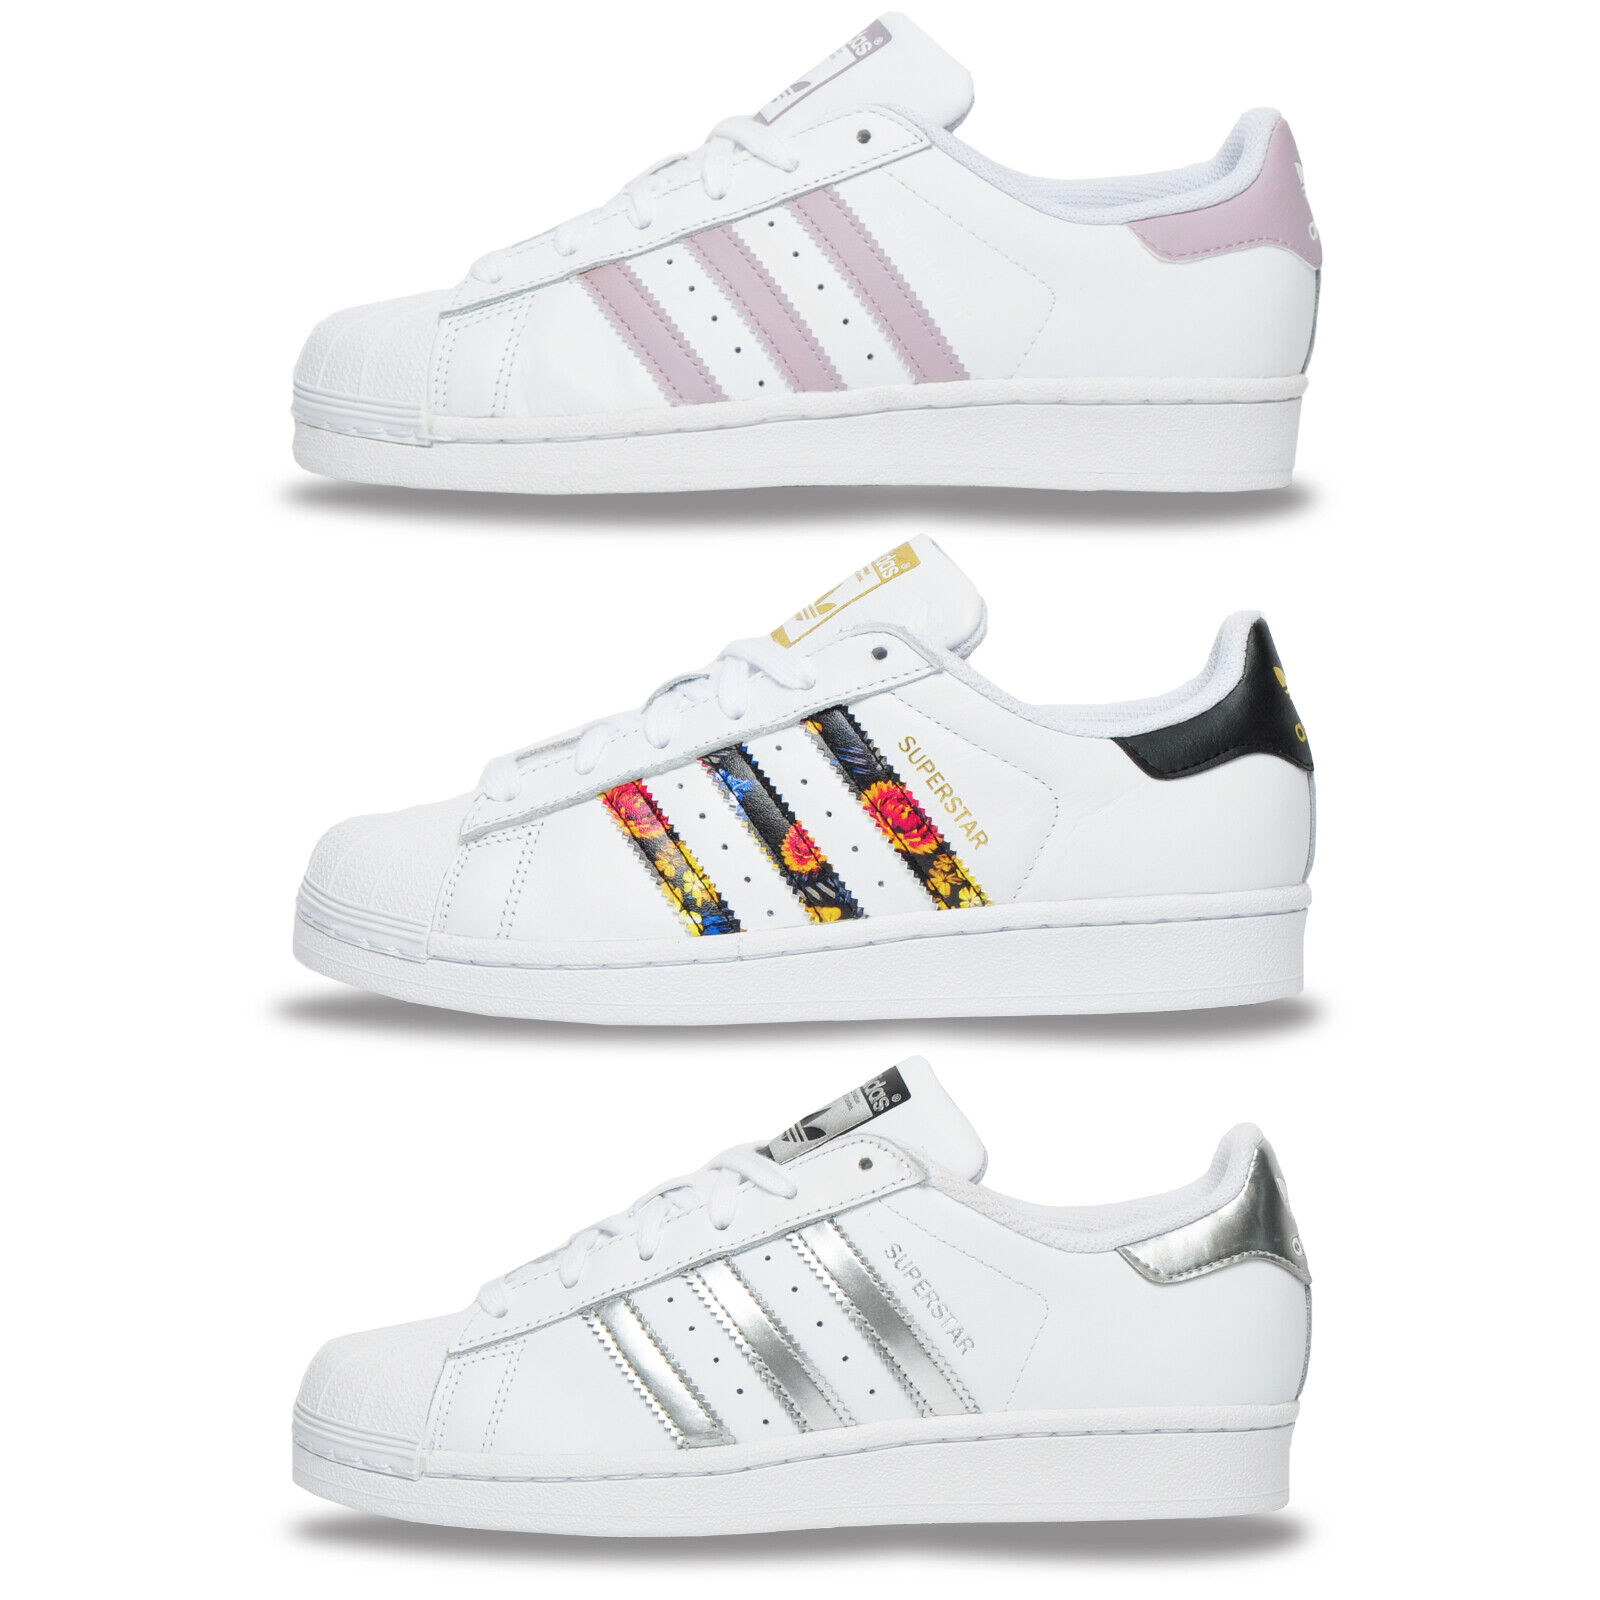 Shopping - junior adidas superstar trainers - OFF 75% - Shipping ...